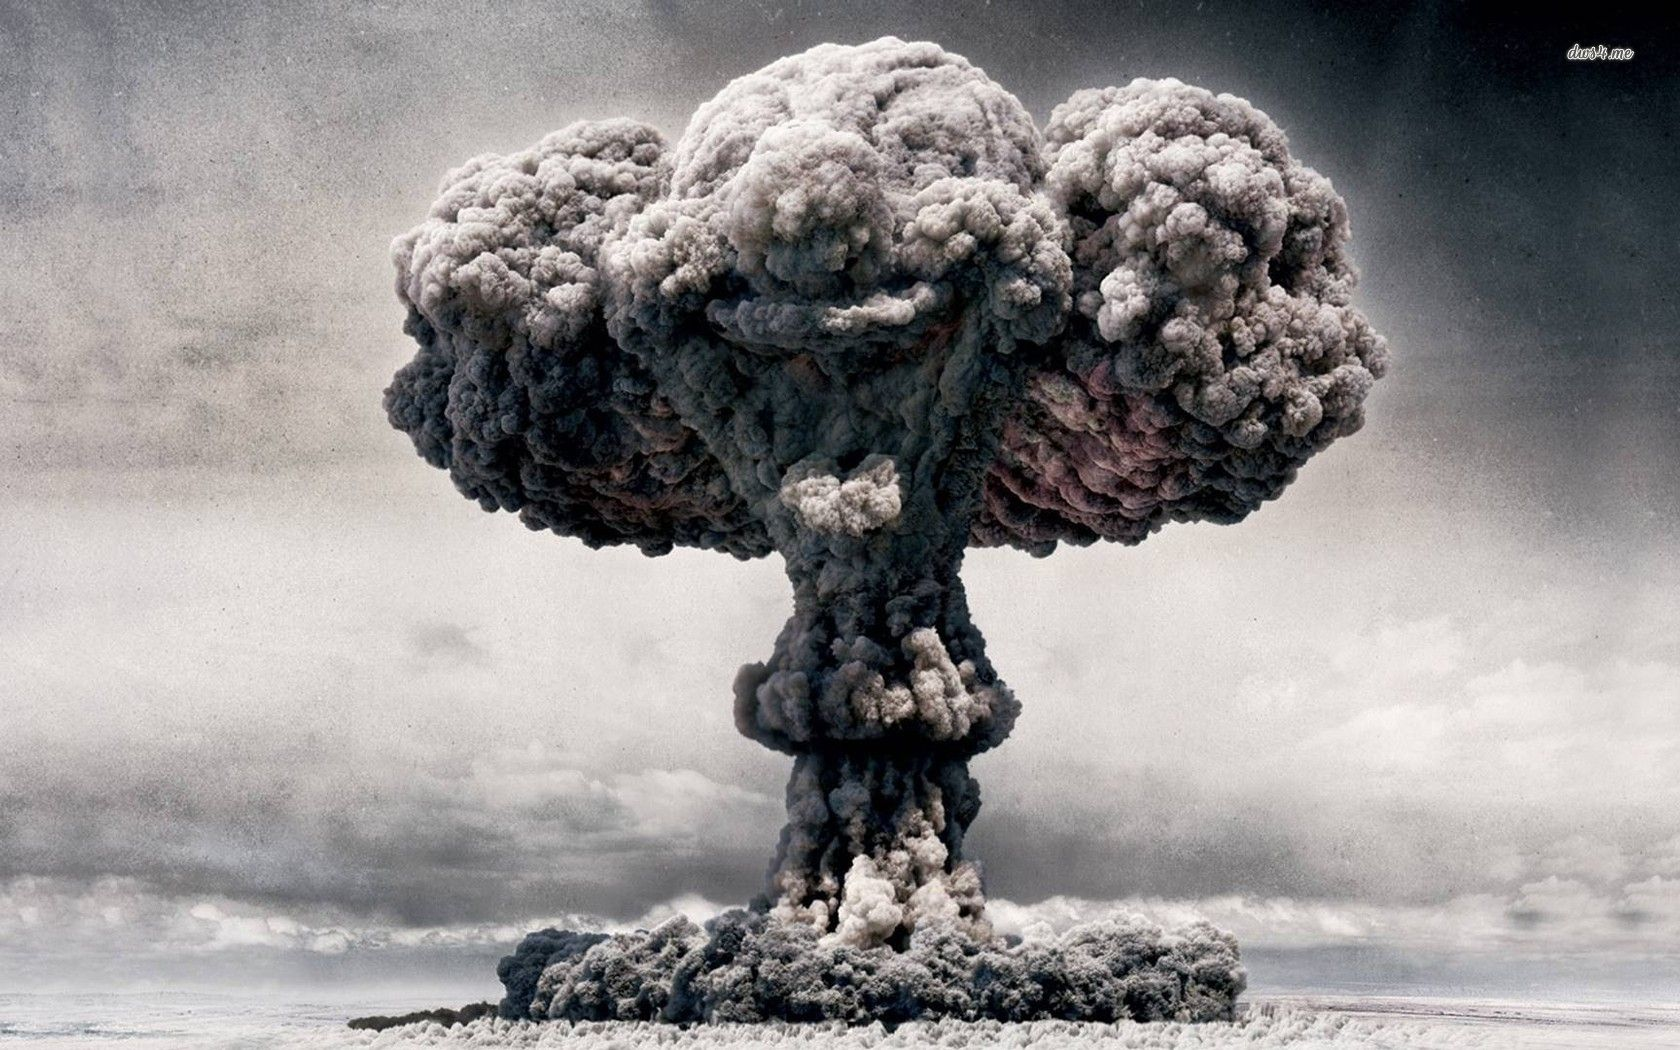 Hd Wallpapers Bomb Explosion Wallpaper Mushroom Cloud Mushroom Cloud Stuffed Mushrooms Clouds